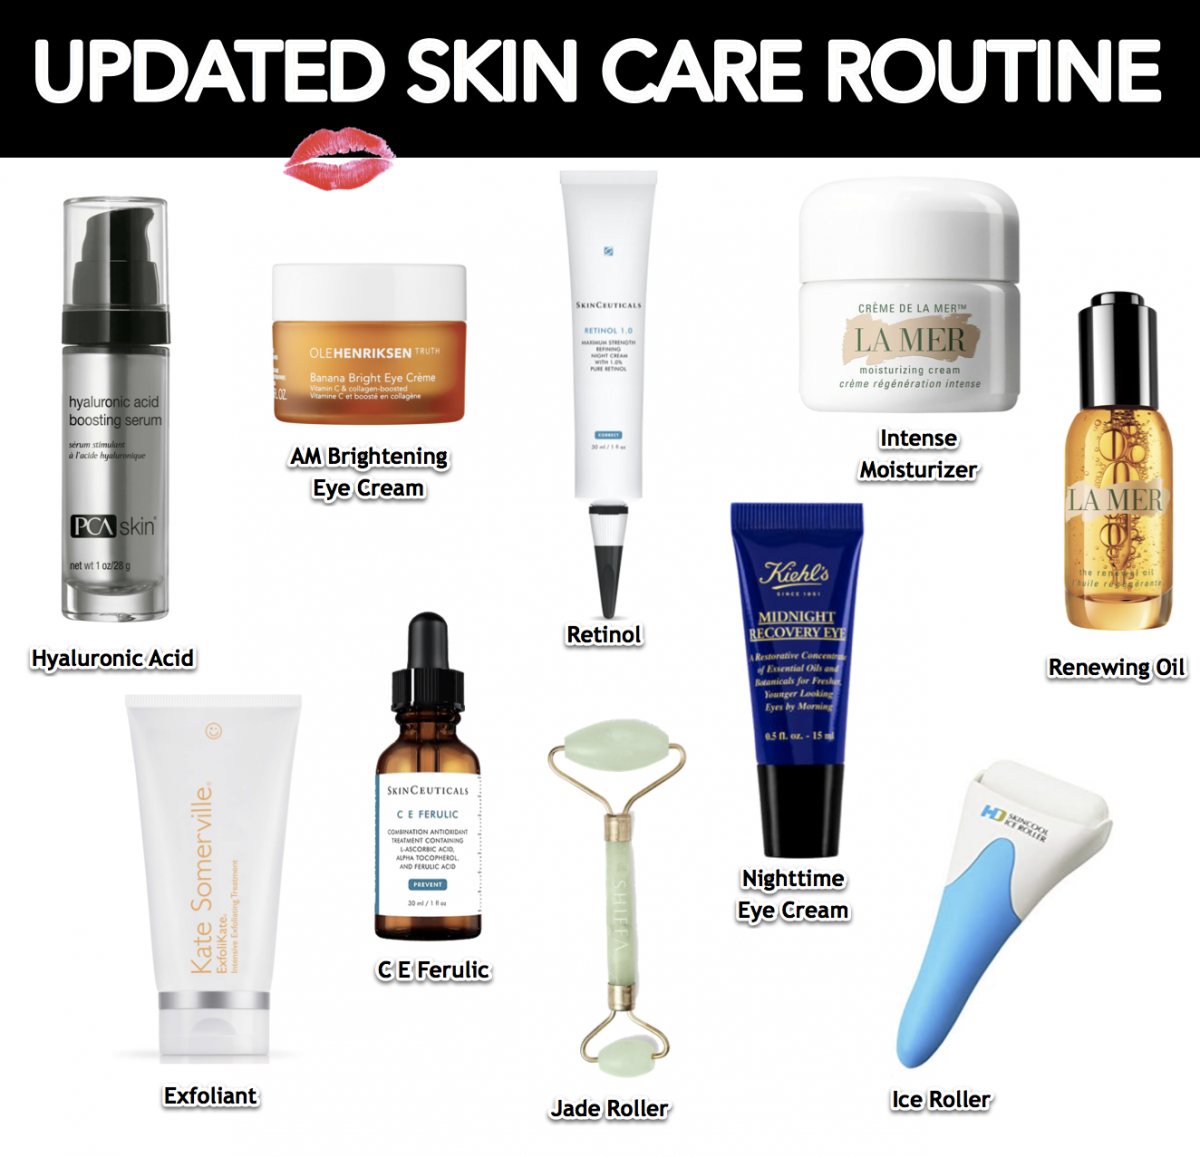 EMILY-gemma-update-skin-care-routine-jade-roller-review-best-hyaluronic-acid-best-retinol-for-young-people-best-la-mer-products